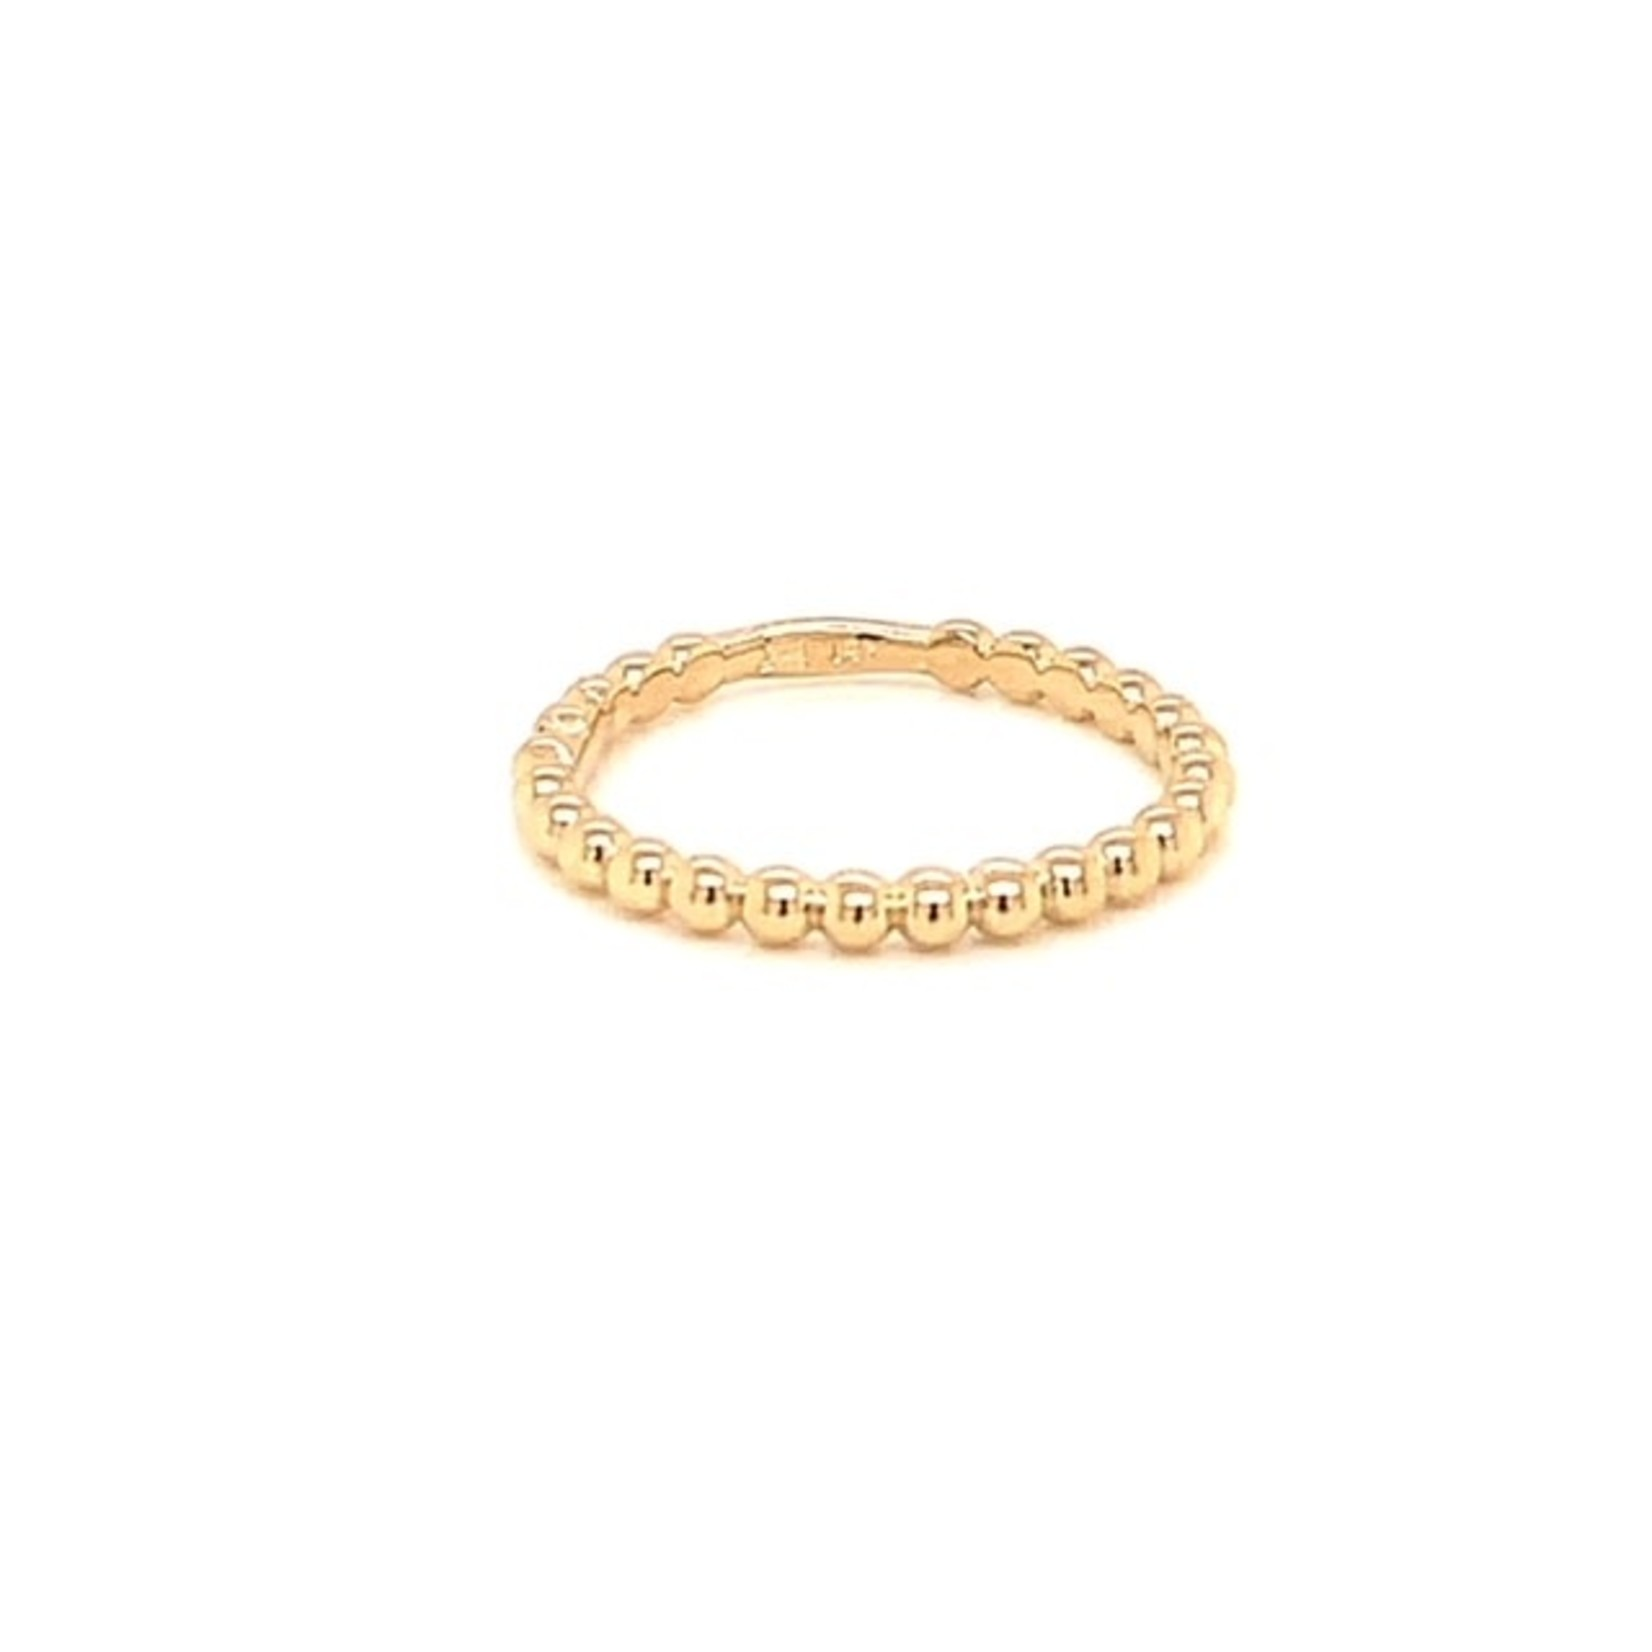 On The Edge Bumpy Road 14kt Yellow Gold